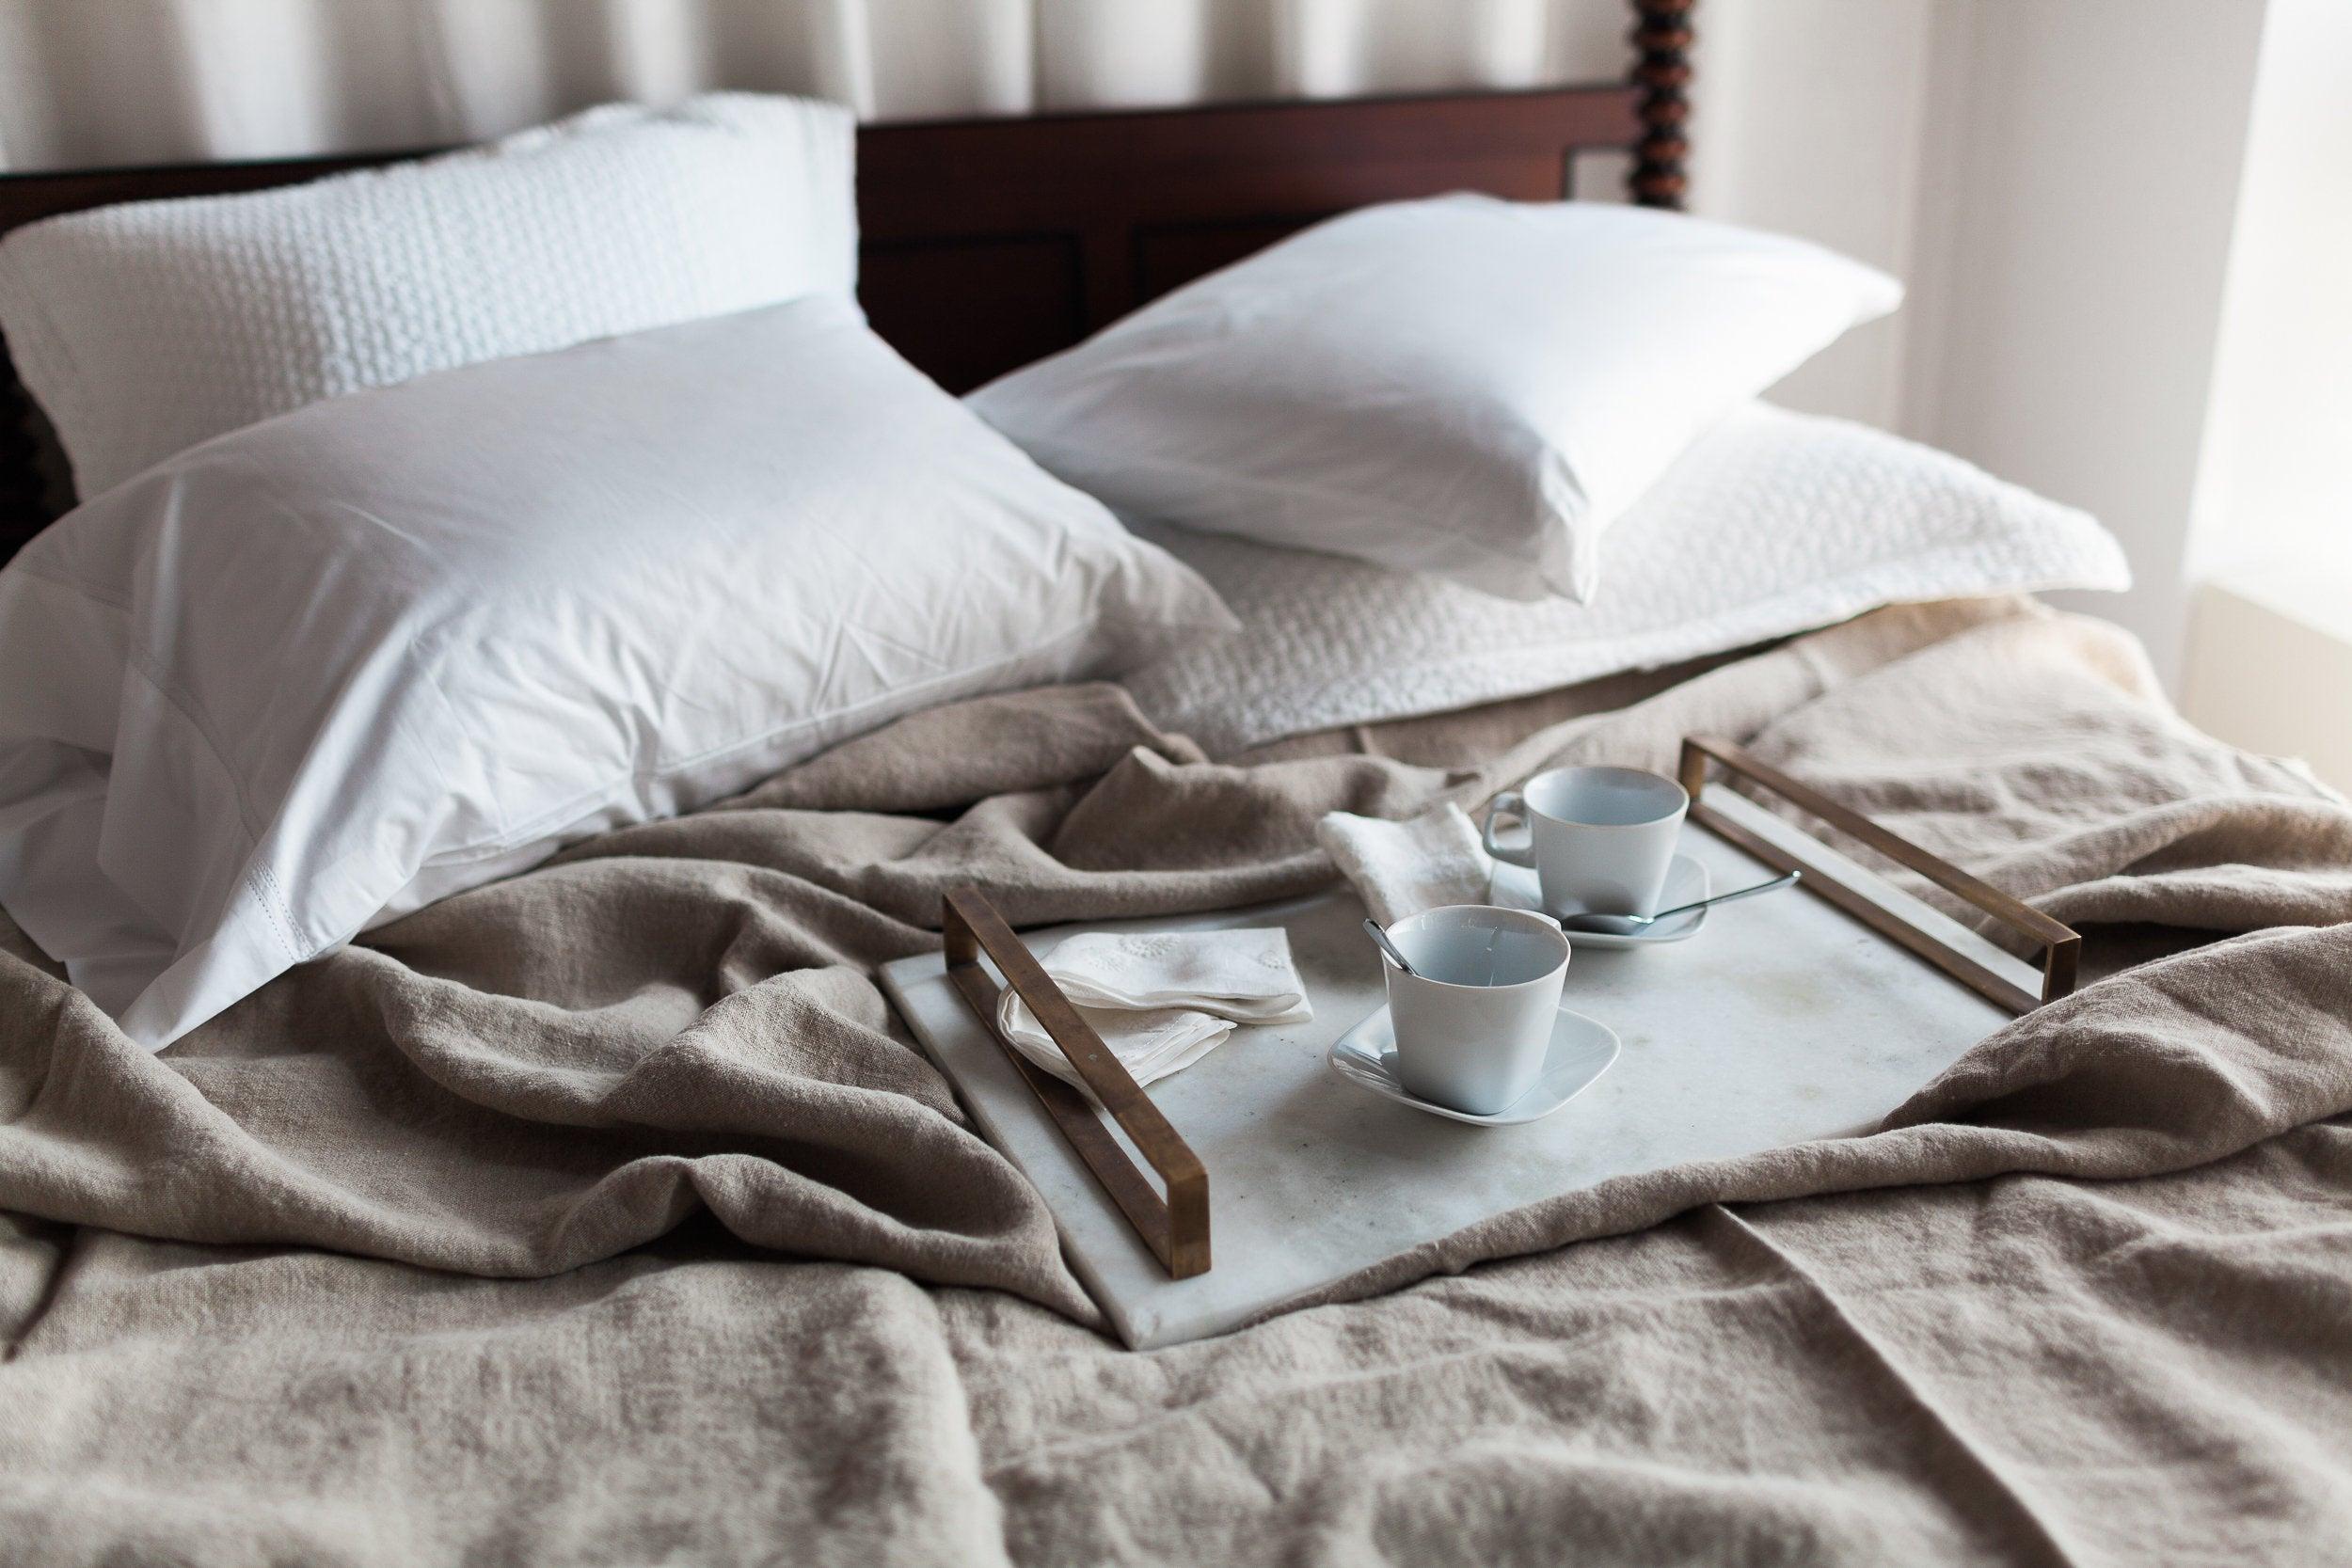 Messy bed featuring various textured linens with a breakfast tray and empty coffee cups